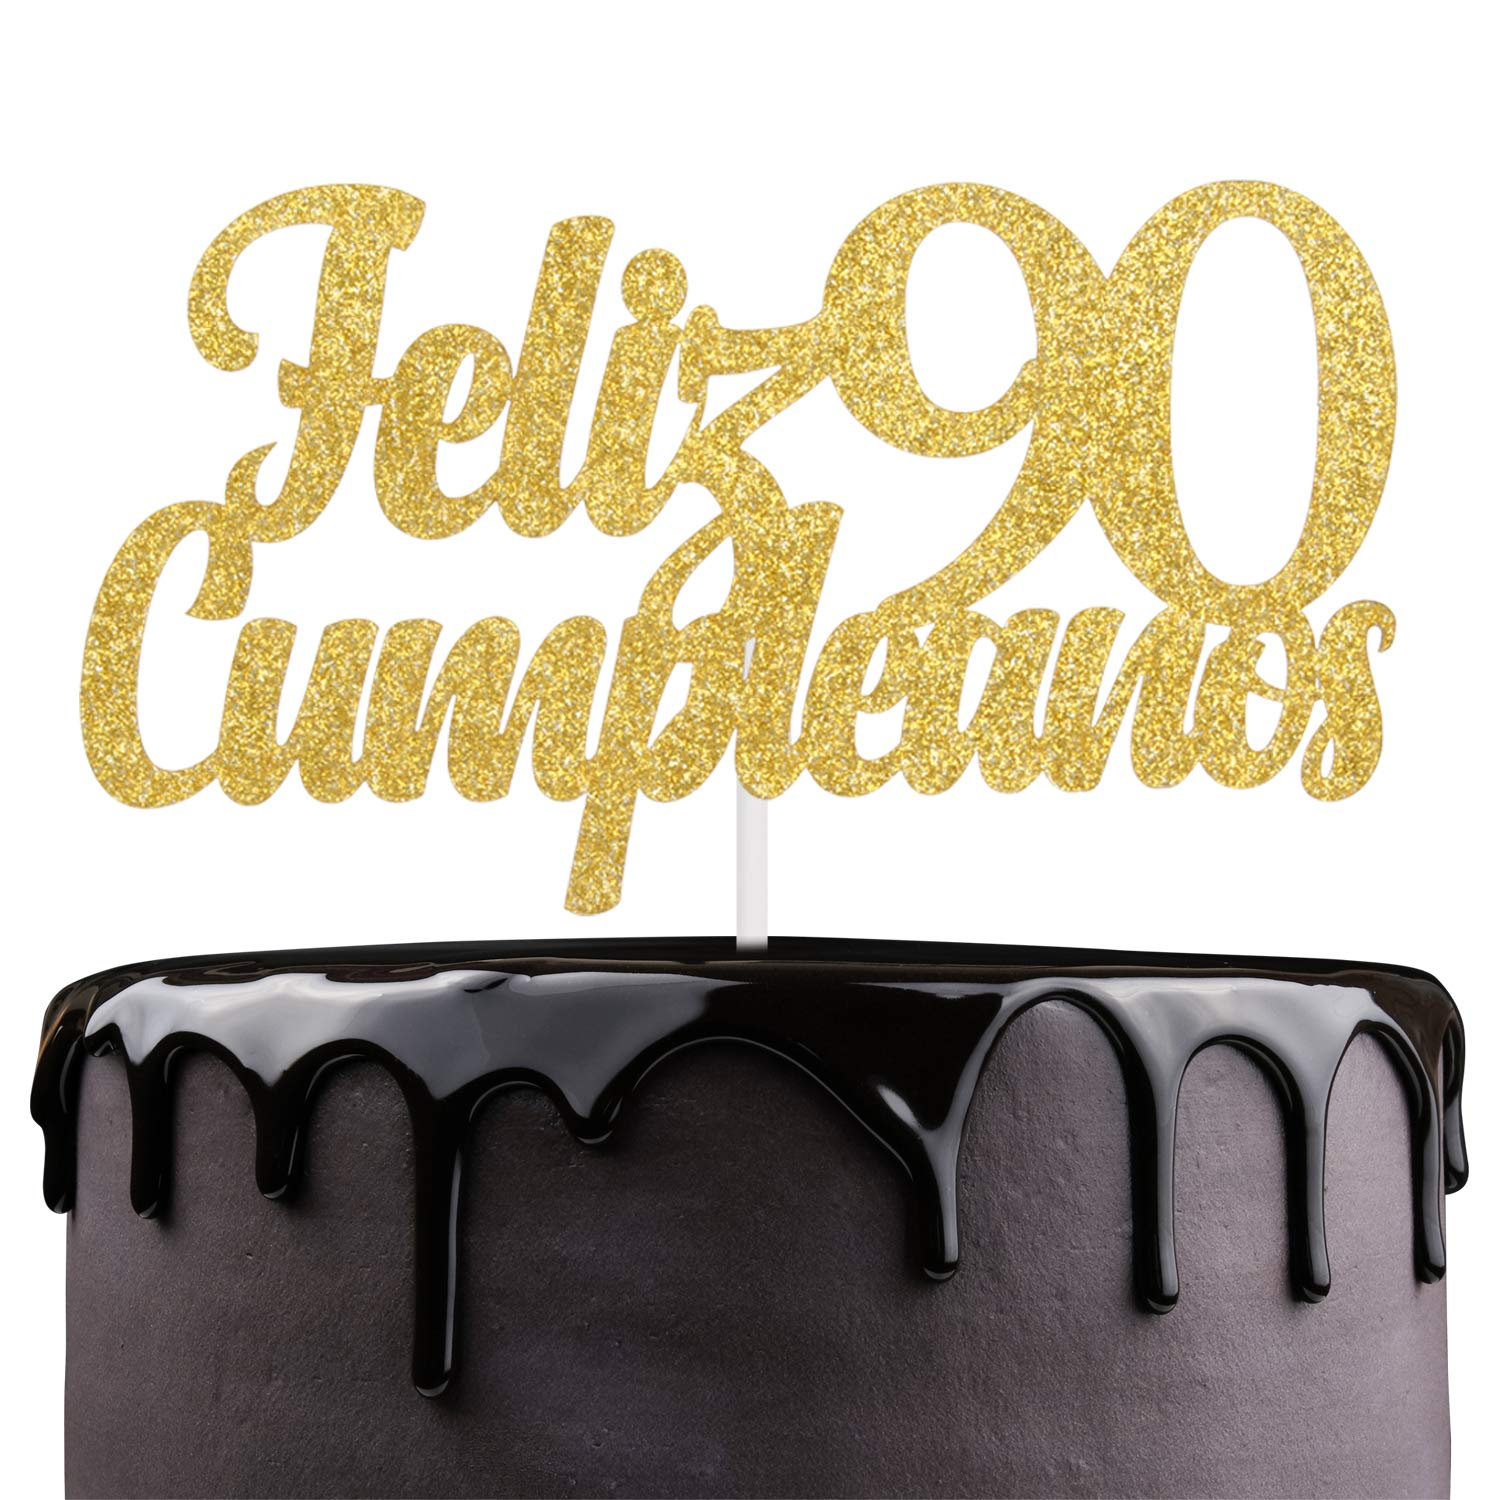 Feliz Cumpleaños 90th Birthday Cake Topper - Gold Glitter Spanish Ninety Days Wedding Anniversar Cake - Cheers To Fabulous 90 - Babys Noventa Días ...